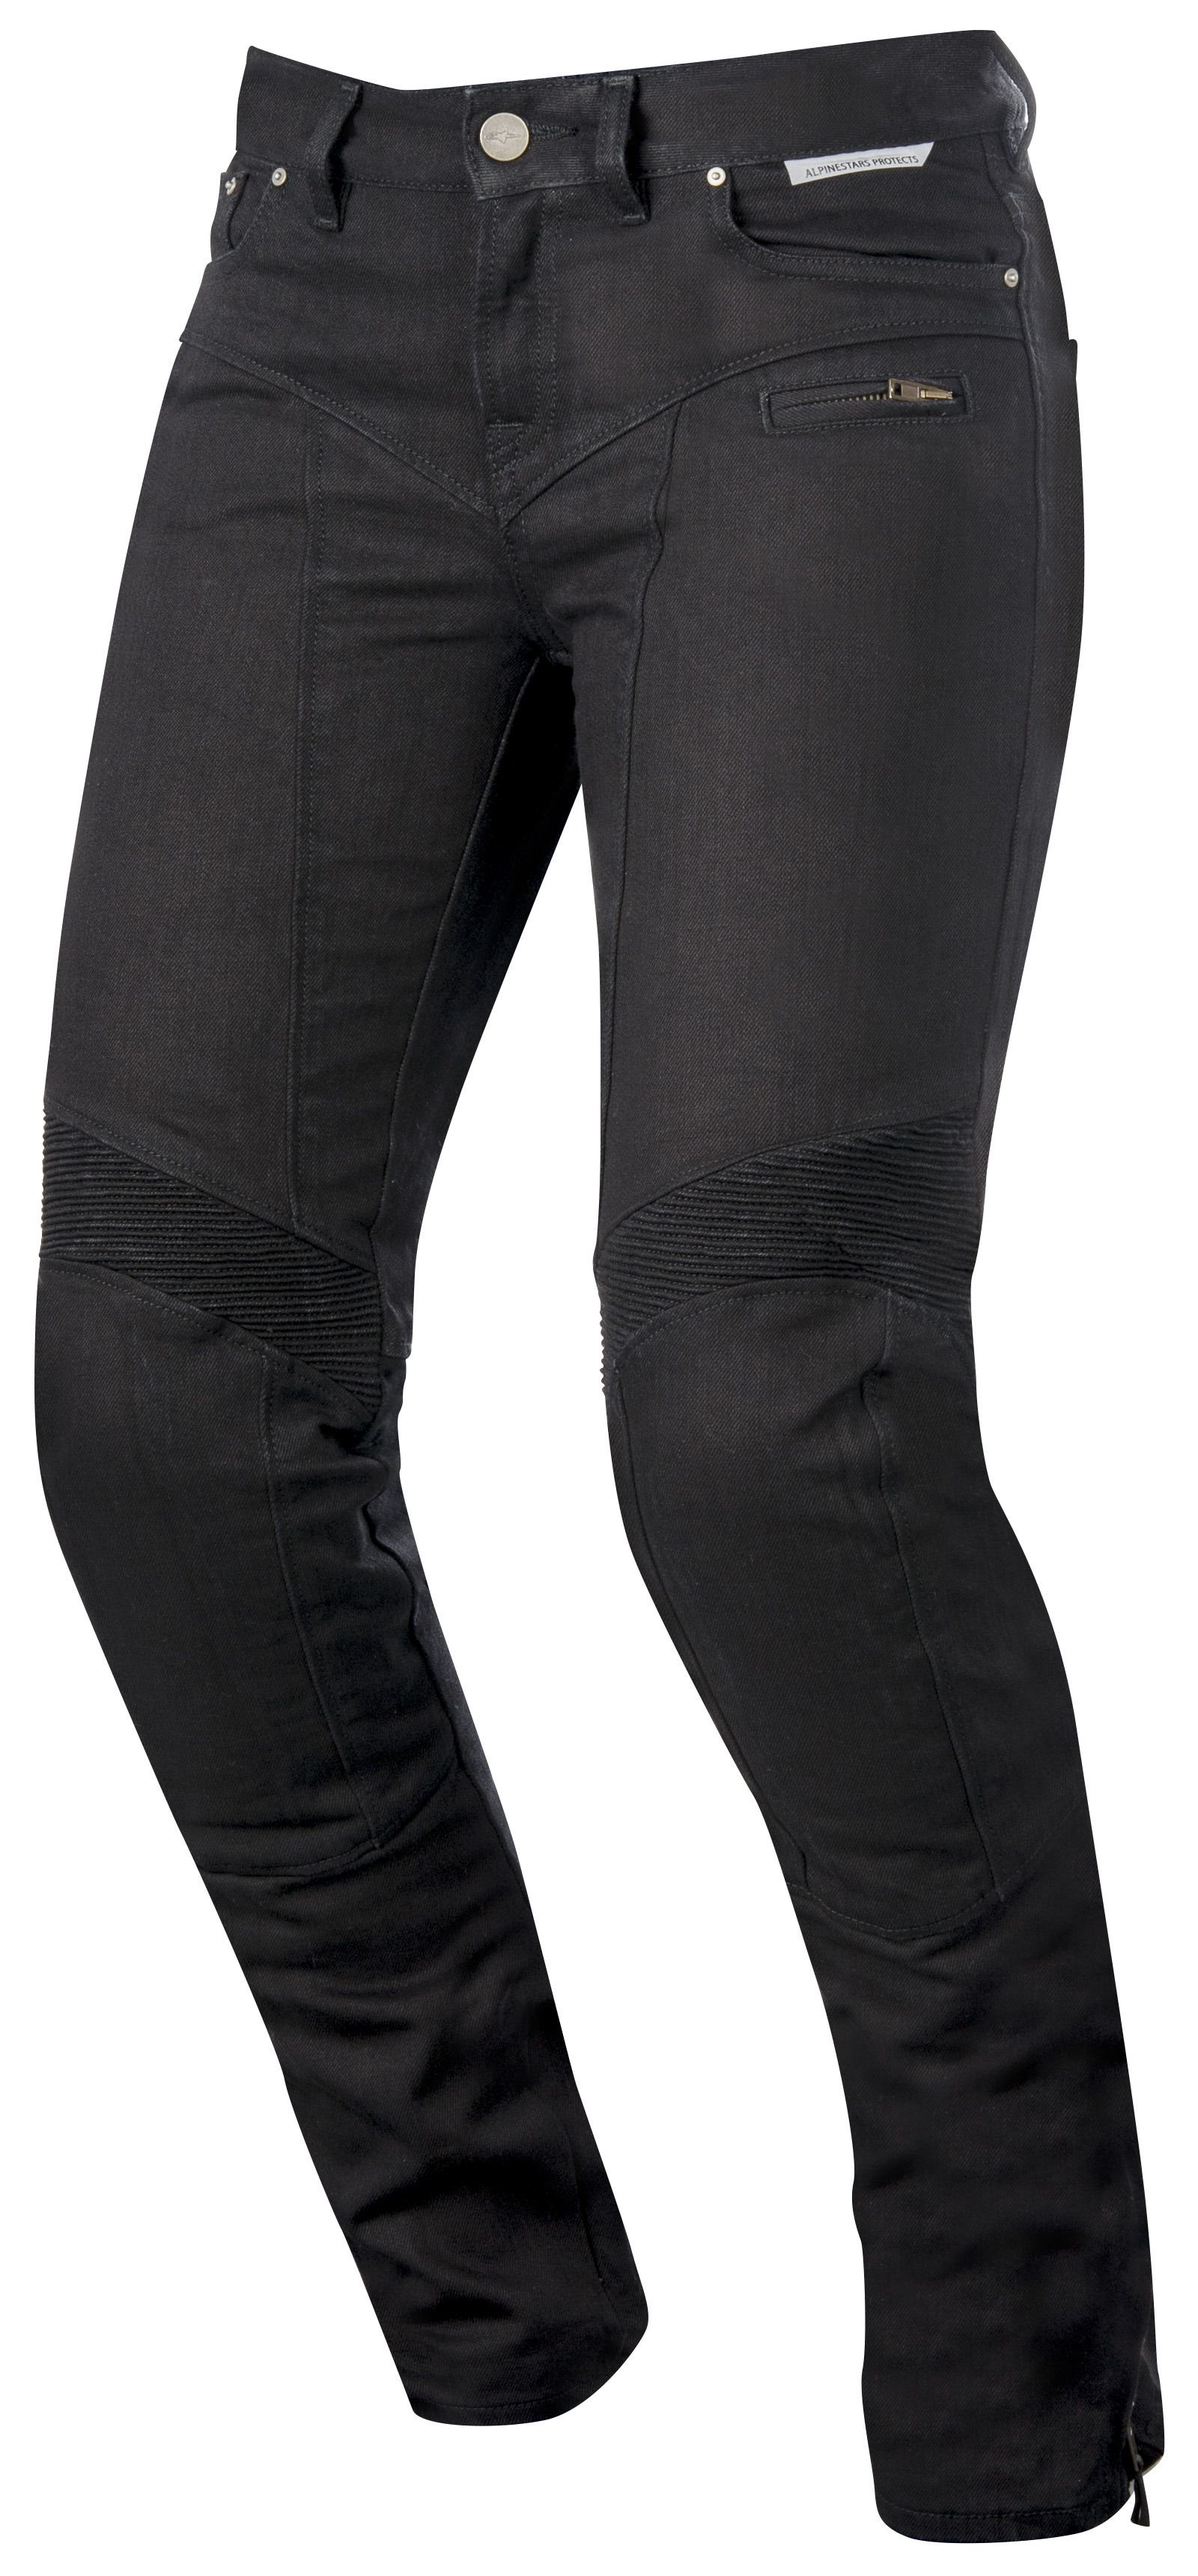 714b4484fc5 I like the construction of these pants Motorcycle Riding Gear